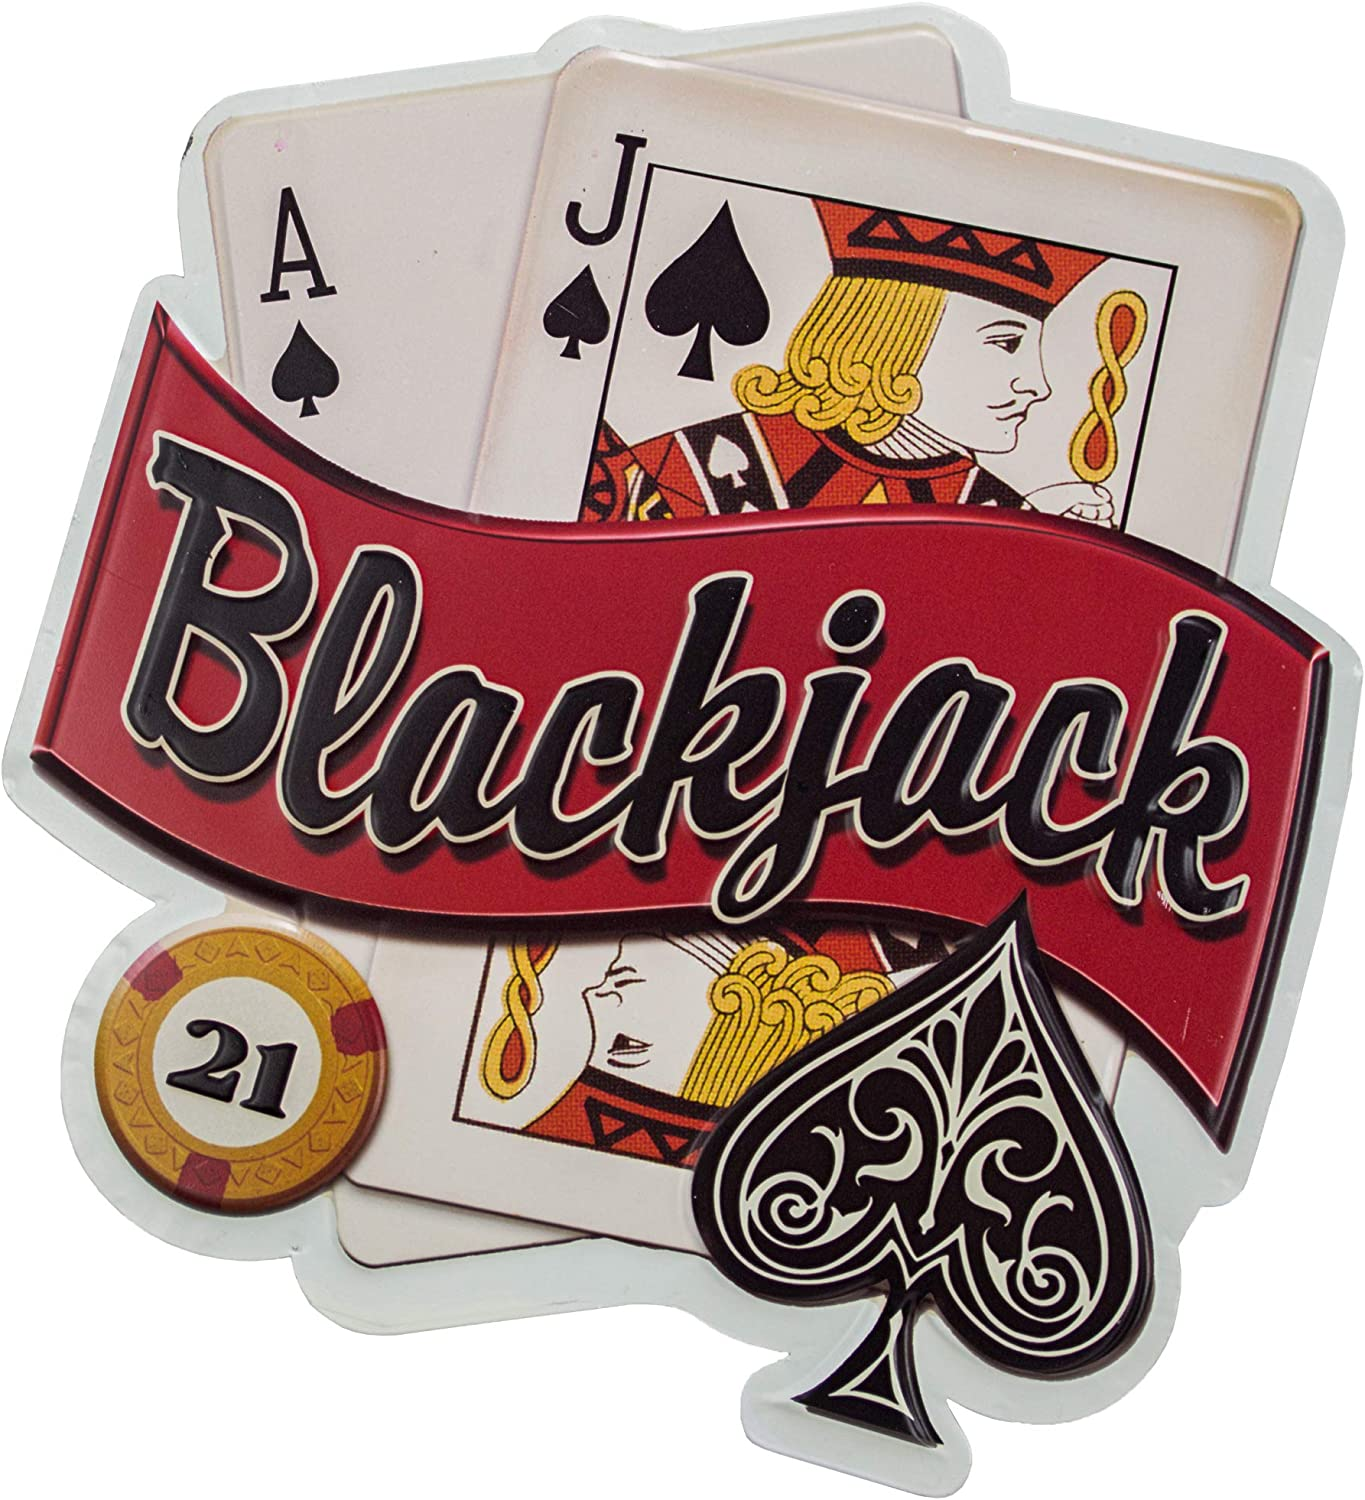 Blackjack Embossed Metal Wall Decor Sign for Bar, Garage or Man Cave